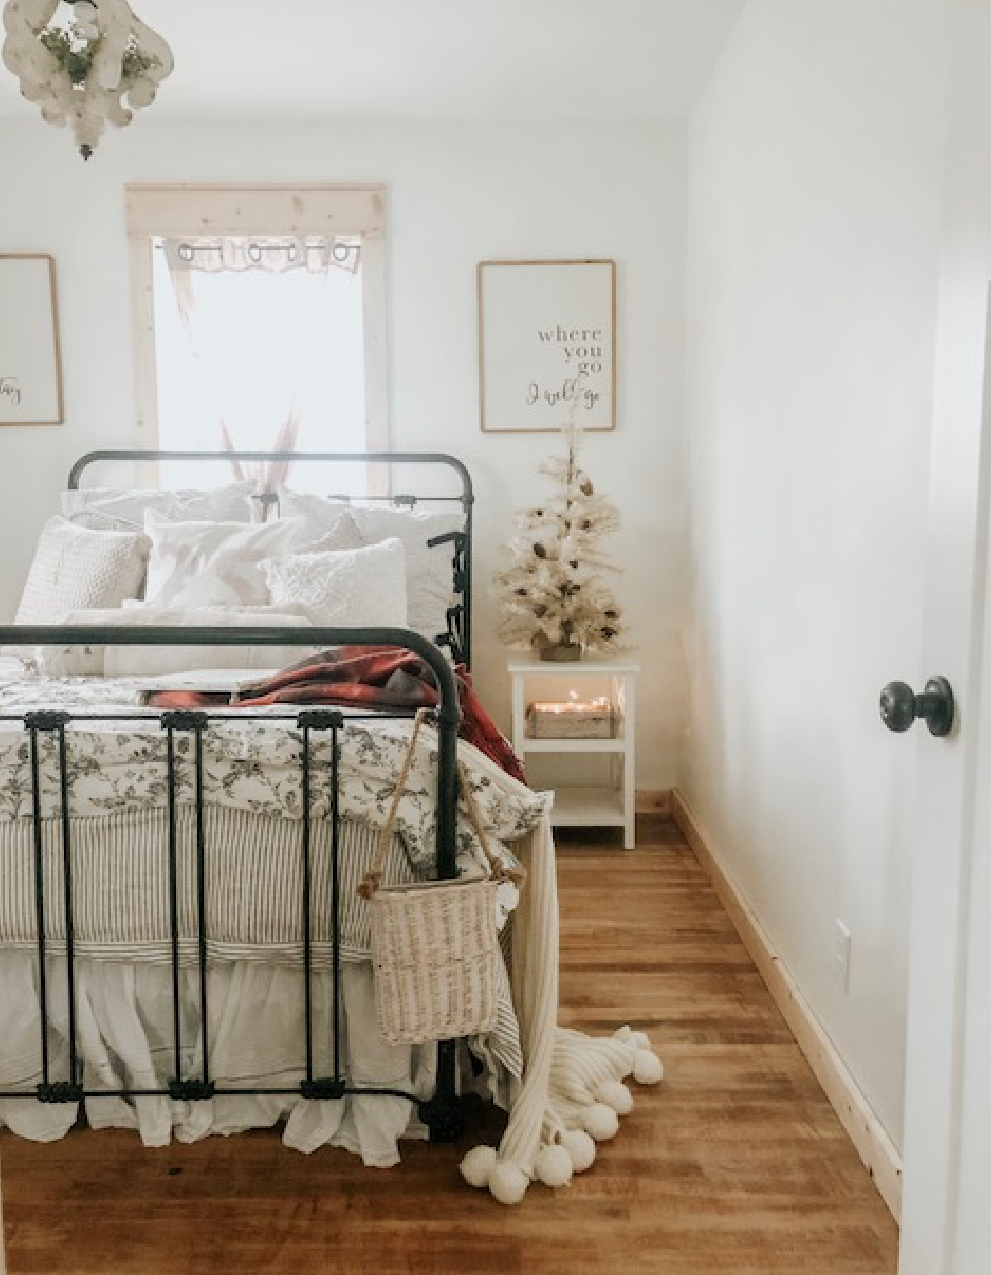 Christmas decorations and treasured pieces inside of cozy little guest bedroom.